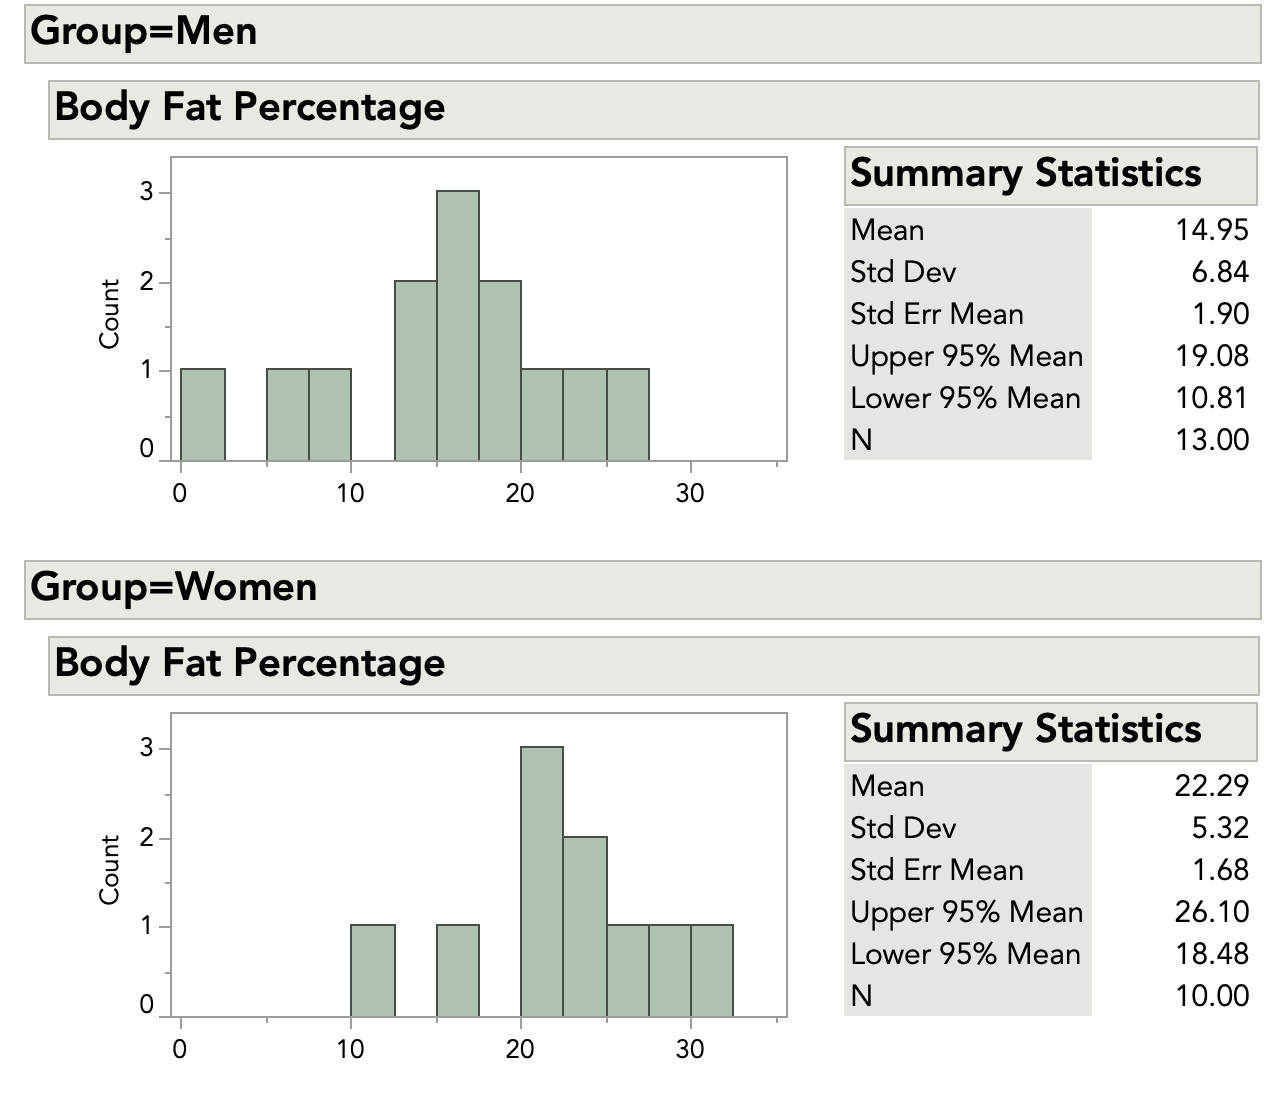 Histogram and summary statistics for the body fat data